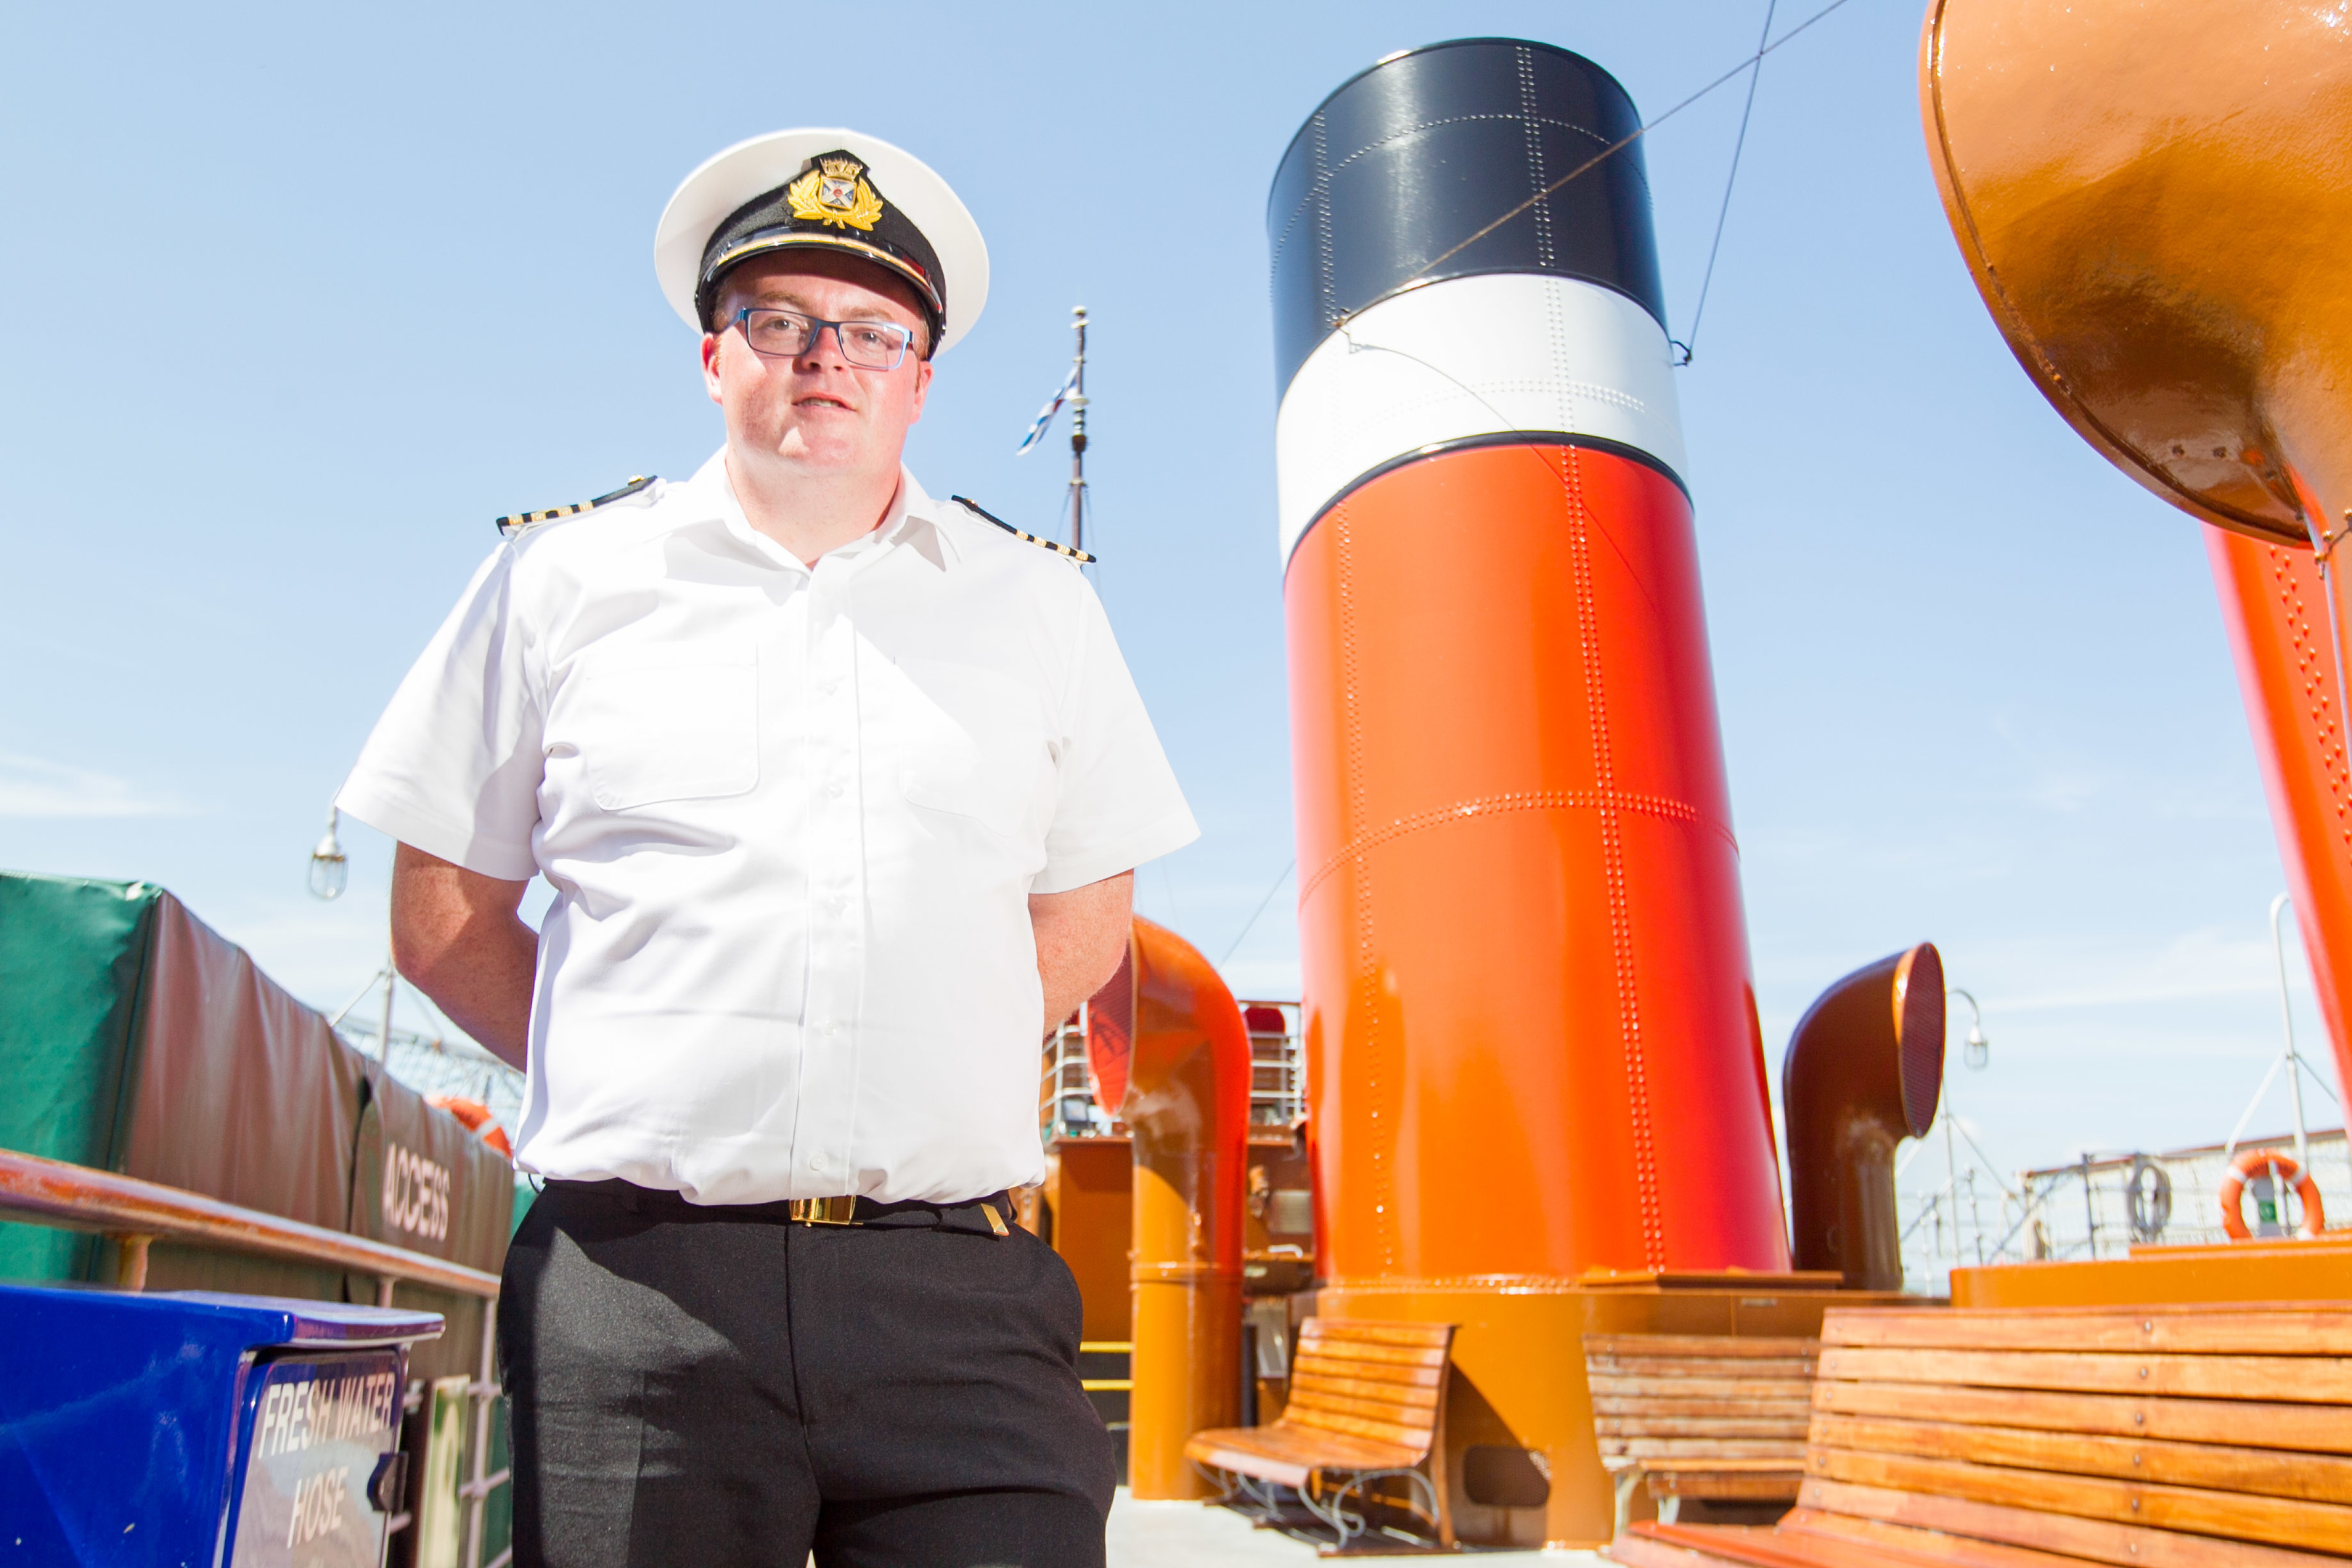 New PS Waverley Master Captain John Simm on board the paddle steamer (Chris Austin / DC Thomson)